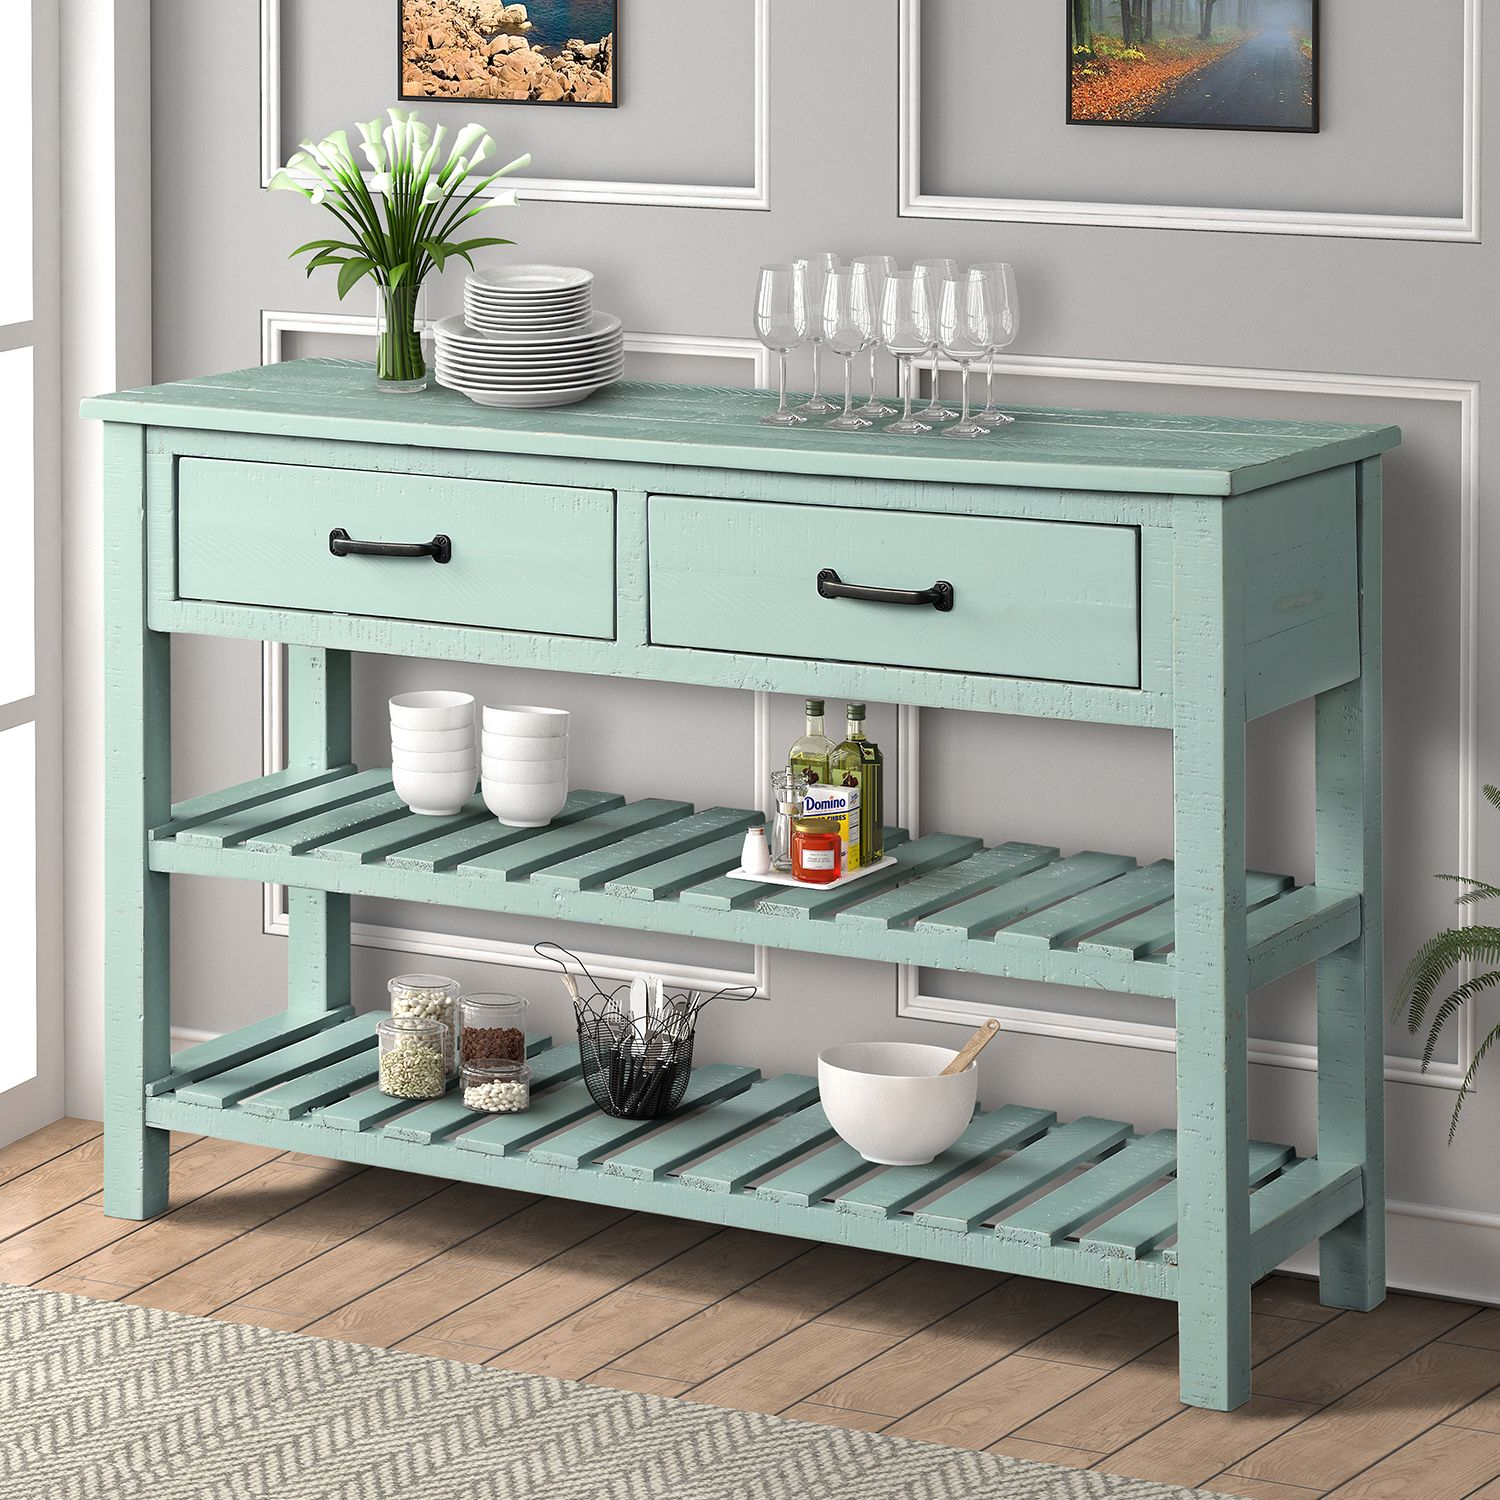 Free 2 Day Shipping Buy Segmart Console Table With Drawers And 2 Cabinets And Bottom Shelf 45 X In 2020 Accent Storage Cabinet Console Table Sofa Table With Drawers